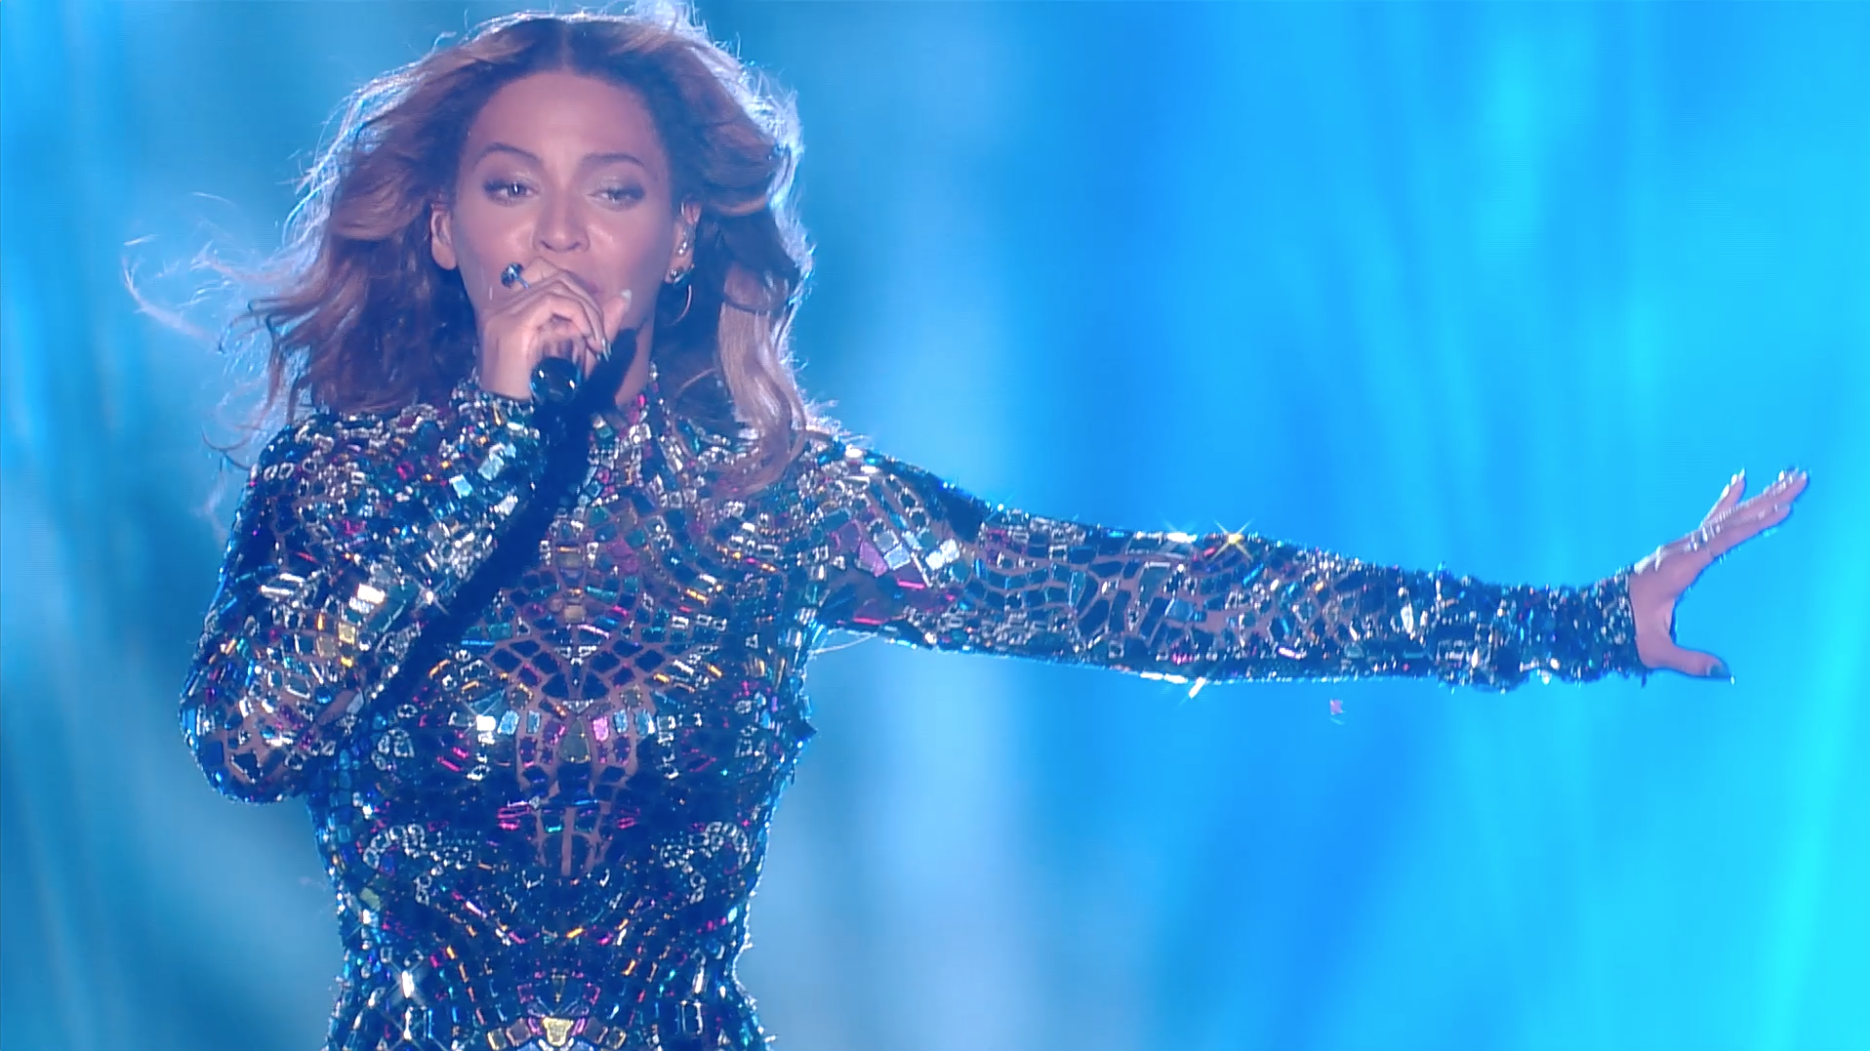 A screenshot of Beyonce's performance at the 2014 MTV Video Music Awards on Aug. 24 in Inglewood, Calif. Credit: Courtesy of MTV.